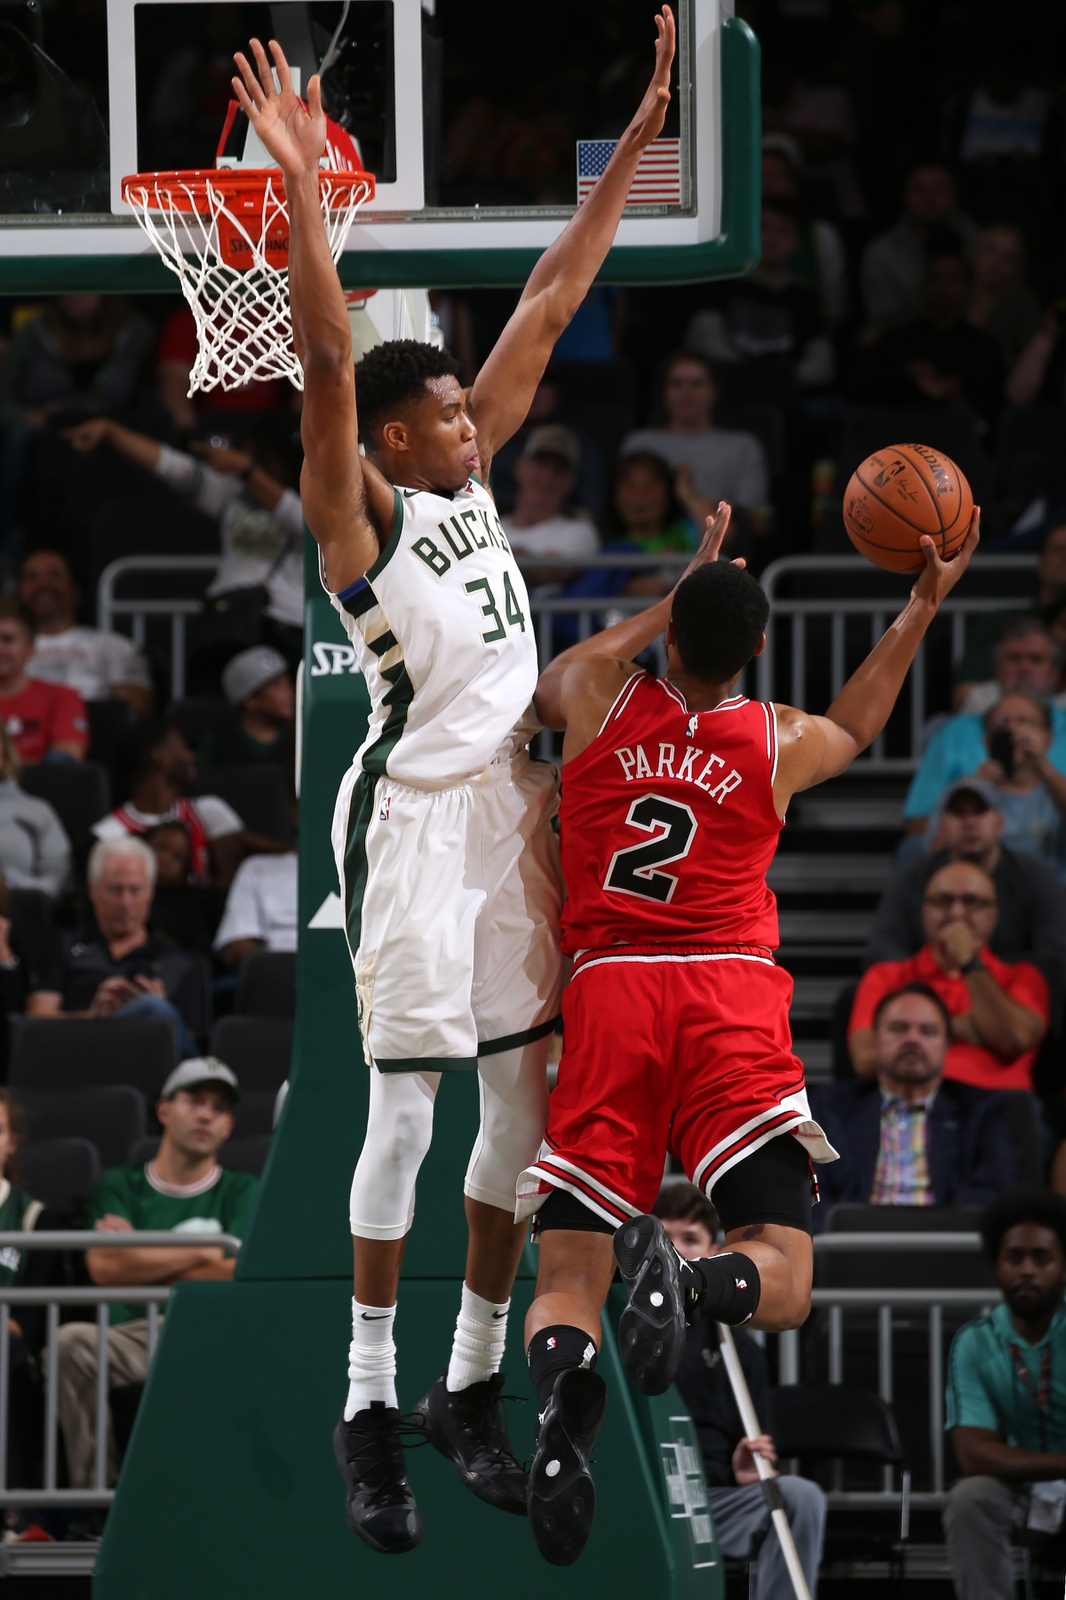 Jabari Parker #2 of the Chicago Bulls attempts to shoot the ball against Giannis Antetokounmpo #34 of the Milwaukee Bucks during a pre-season game on October 3, 2018 at Fiserv Forum, in Milwaukee, Wisconsin.